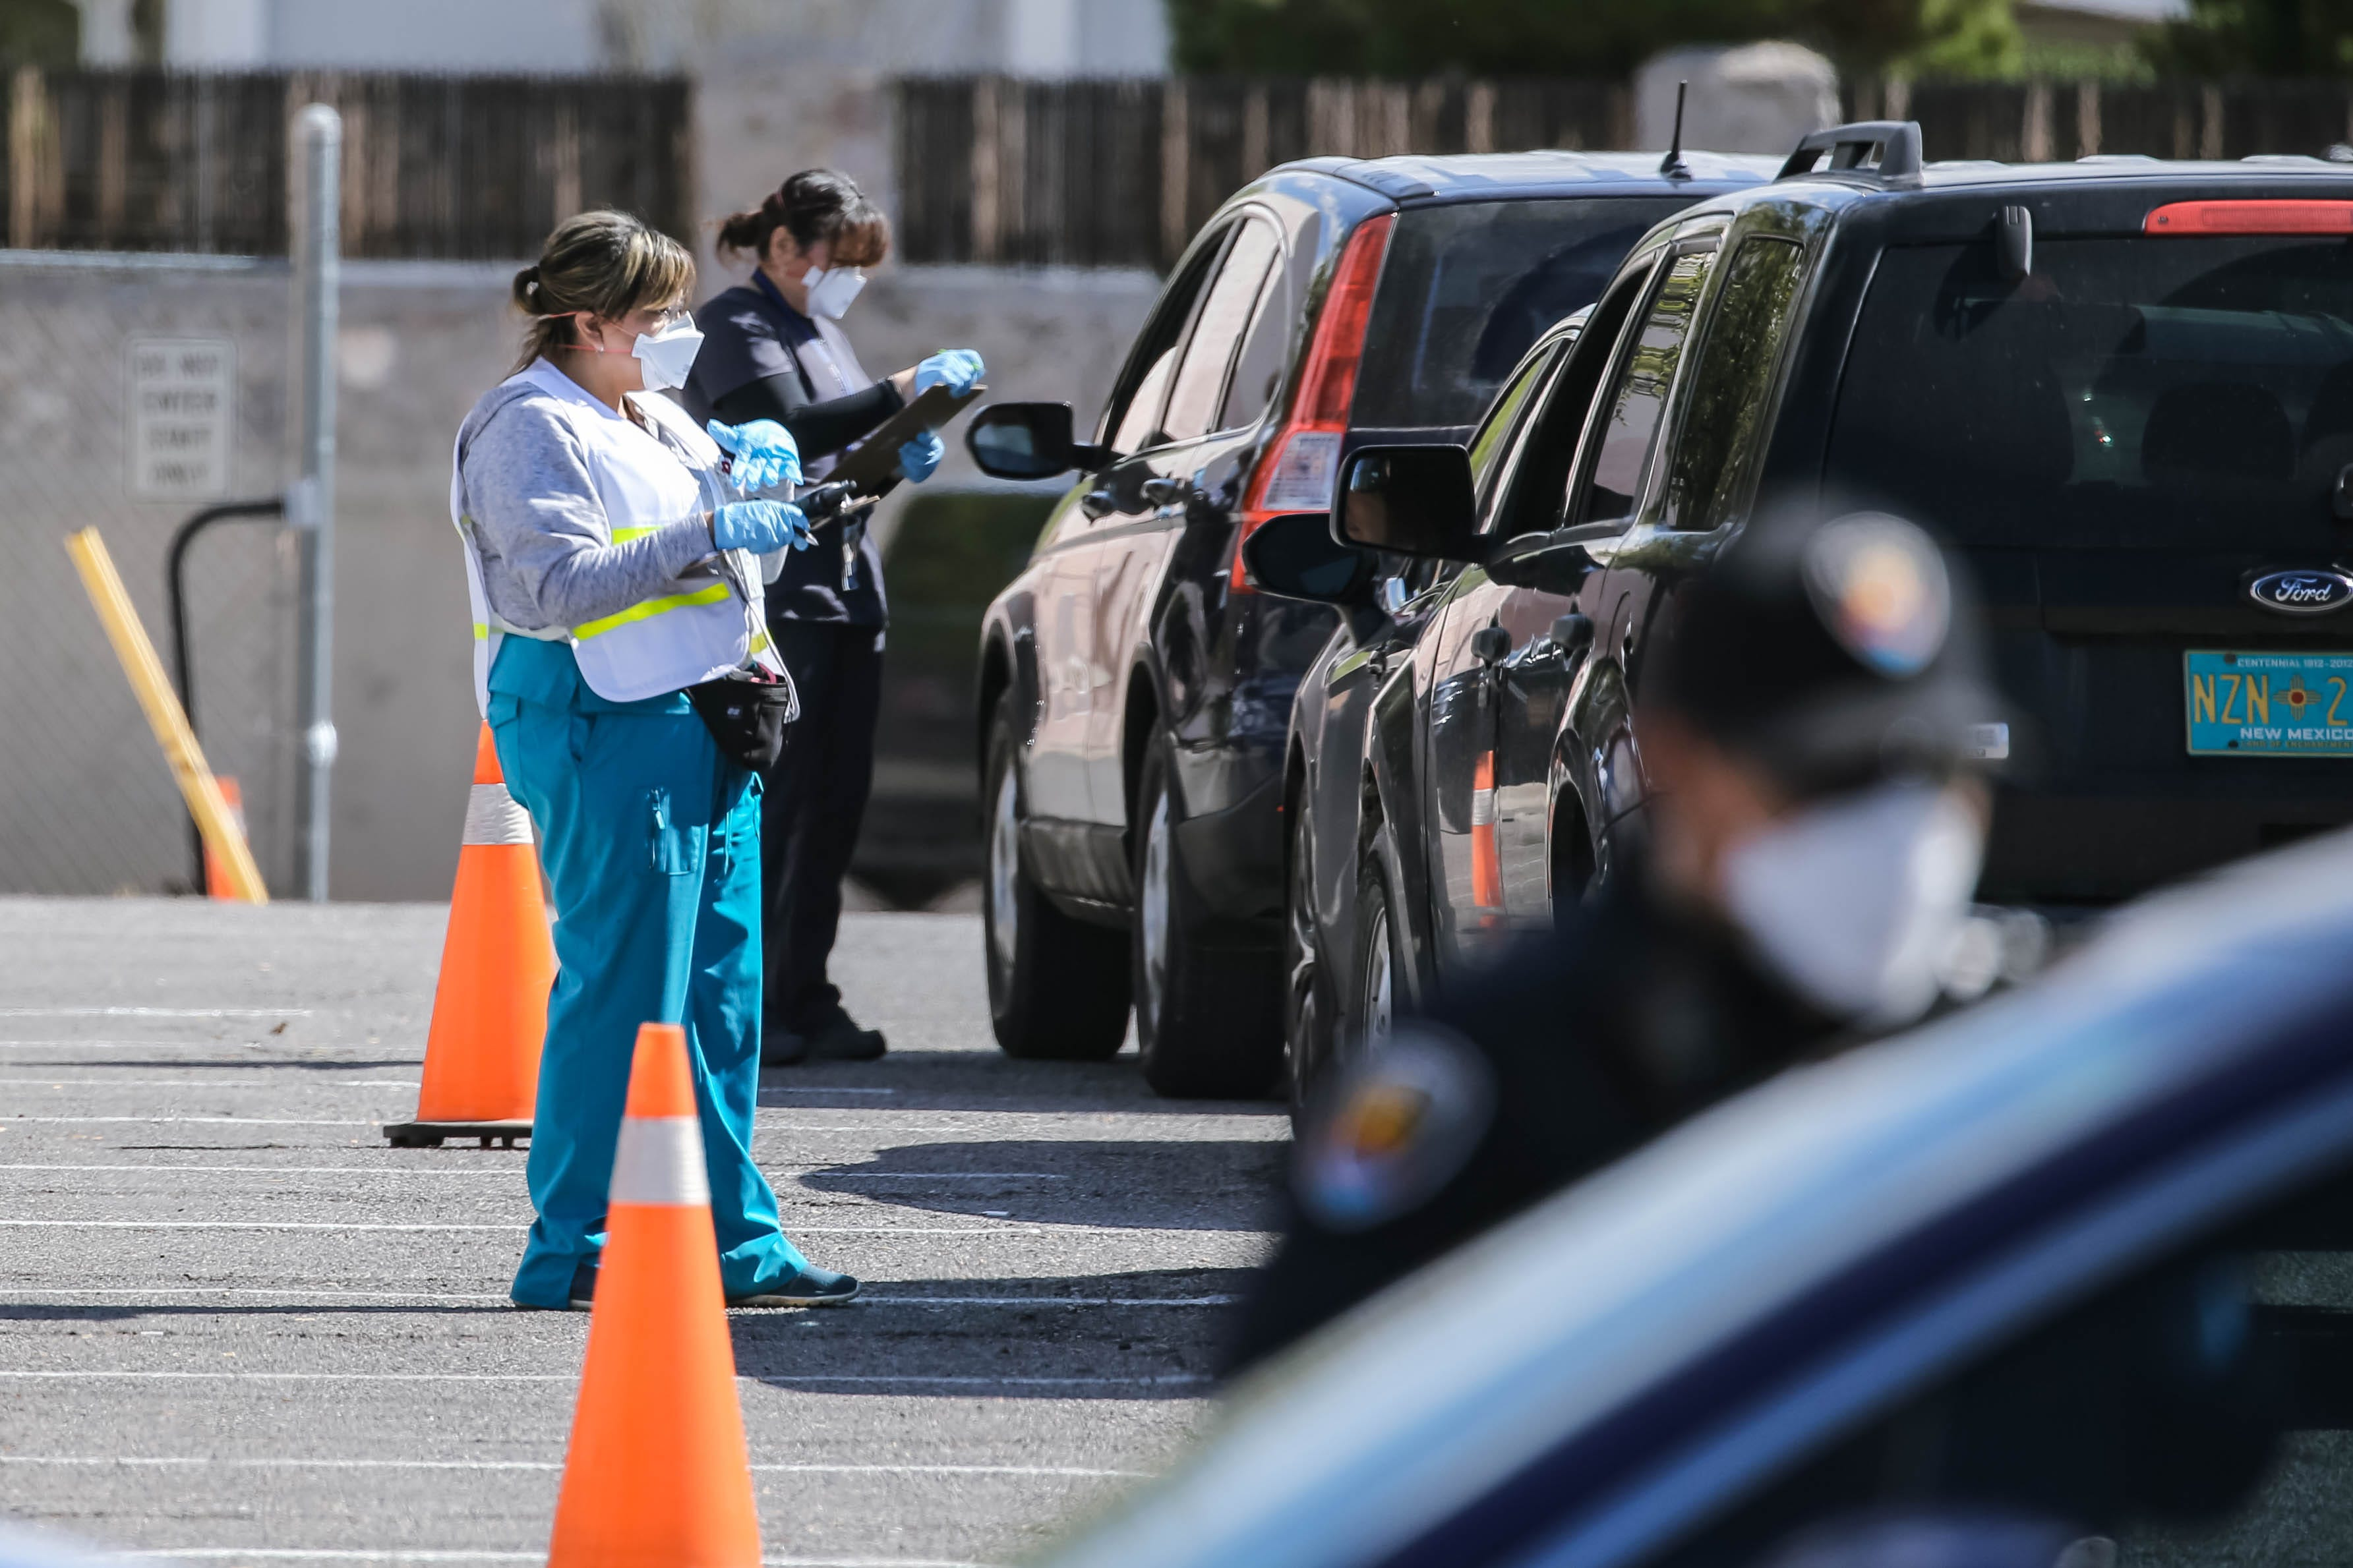 Drive-thru coronavirus testing was set up in Las Cruces at the Doña Ana County Health Services Center, scheduled from on Friday, March 20, 2020, from 9 a.m. to 3 p.m. or until supplies ran out. After closing at around 11:15 a.m. a line of cars waiting were signaled to move on.